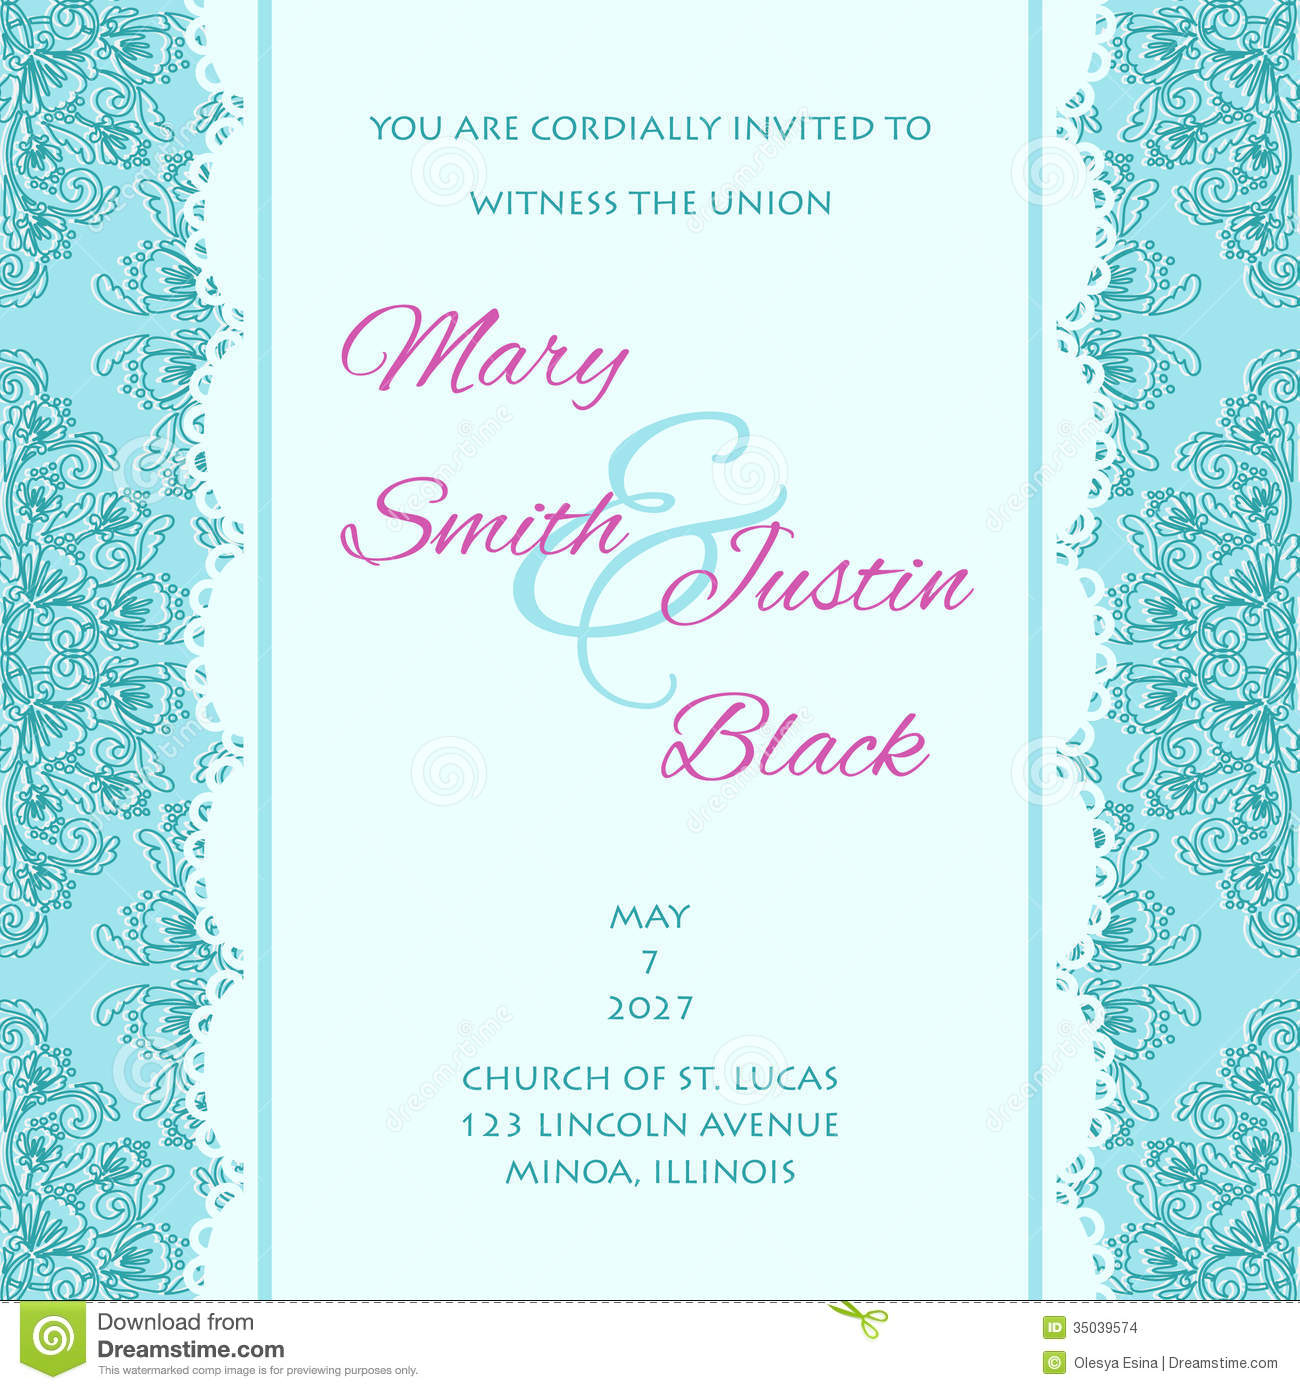 stock images wedding card invitation abstract floral background image wedding card invitation Wedding card